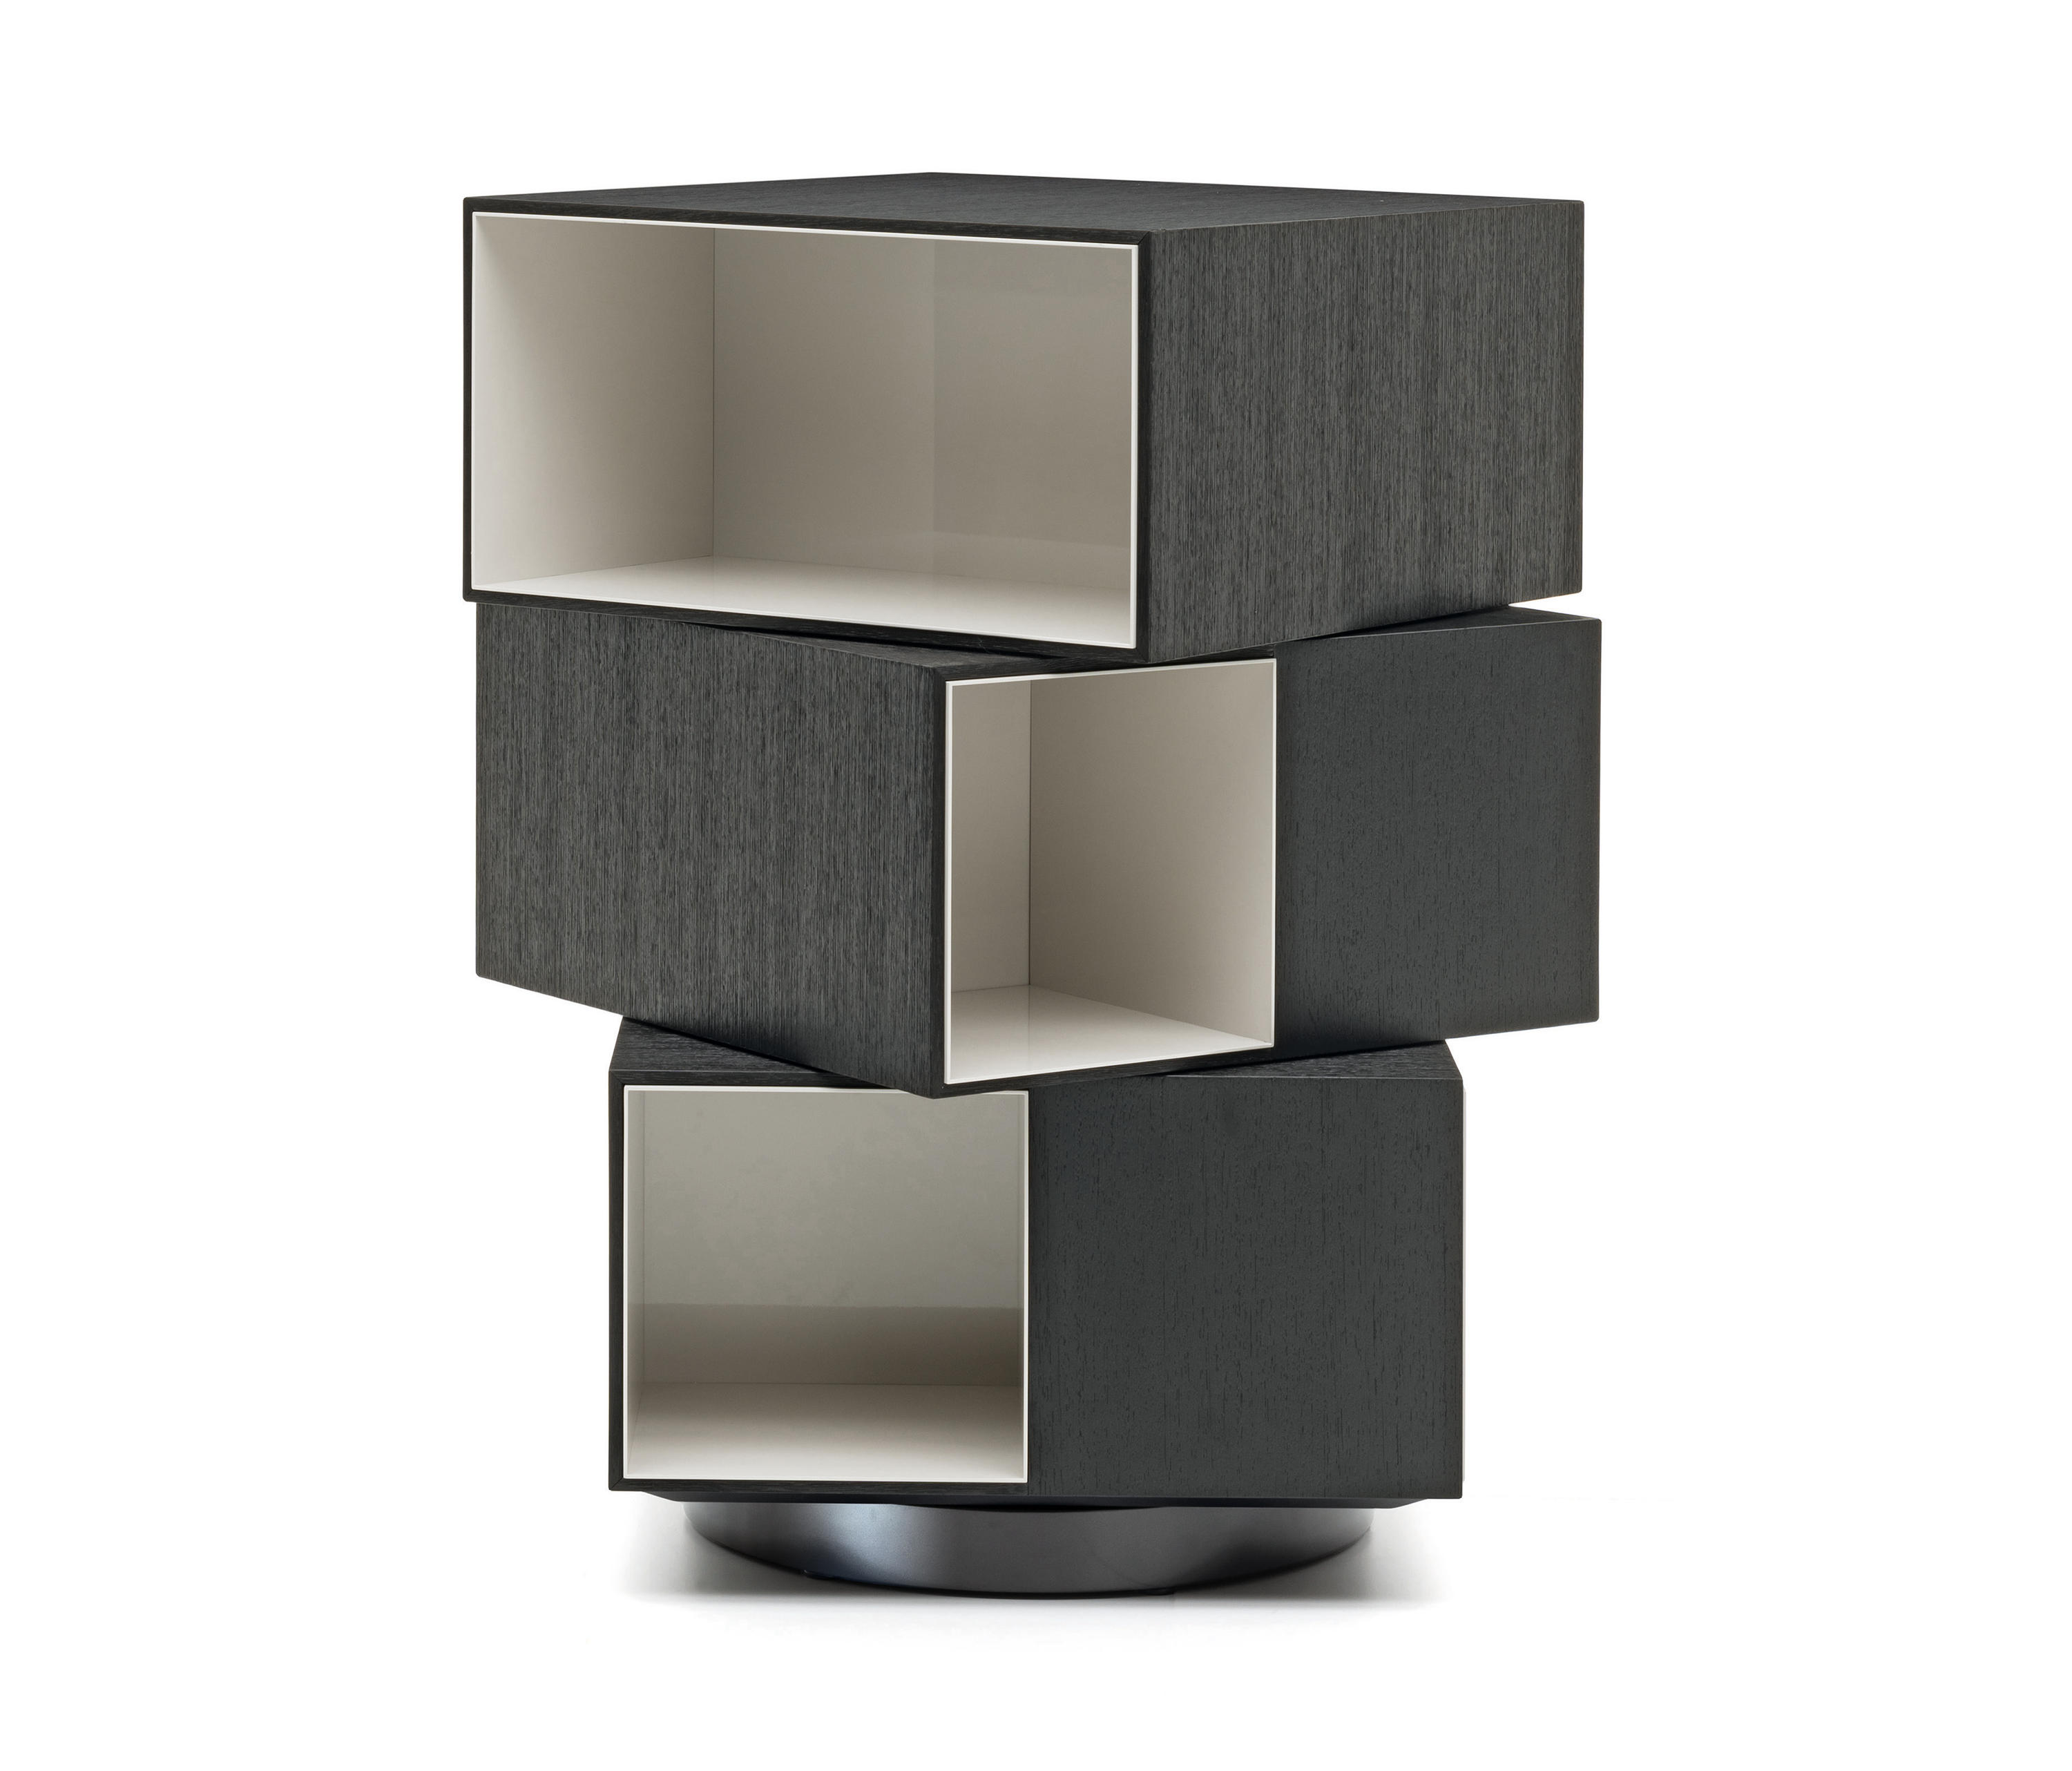 Page Bookcase by Rodolfo Dordoni for Minotti